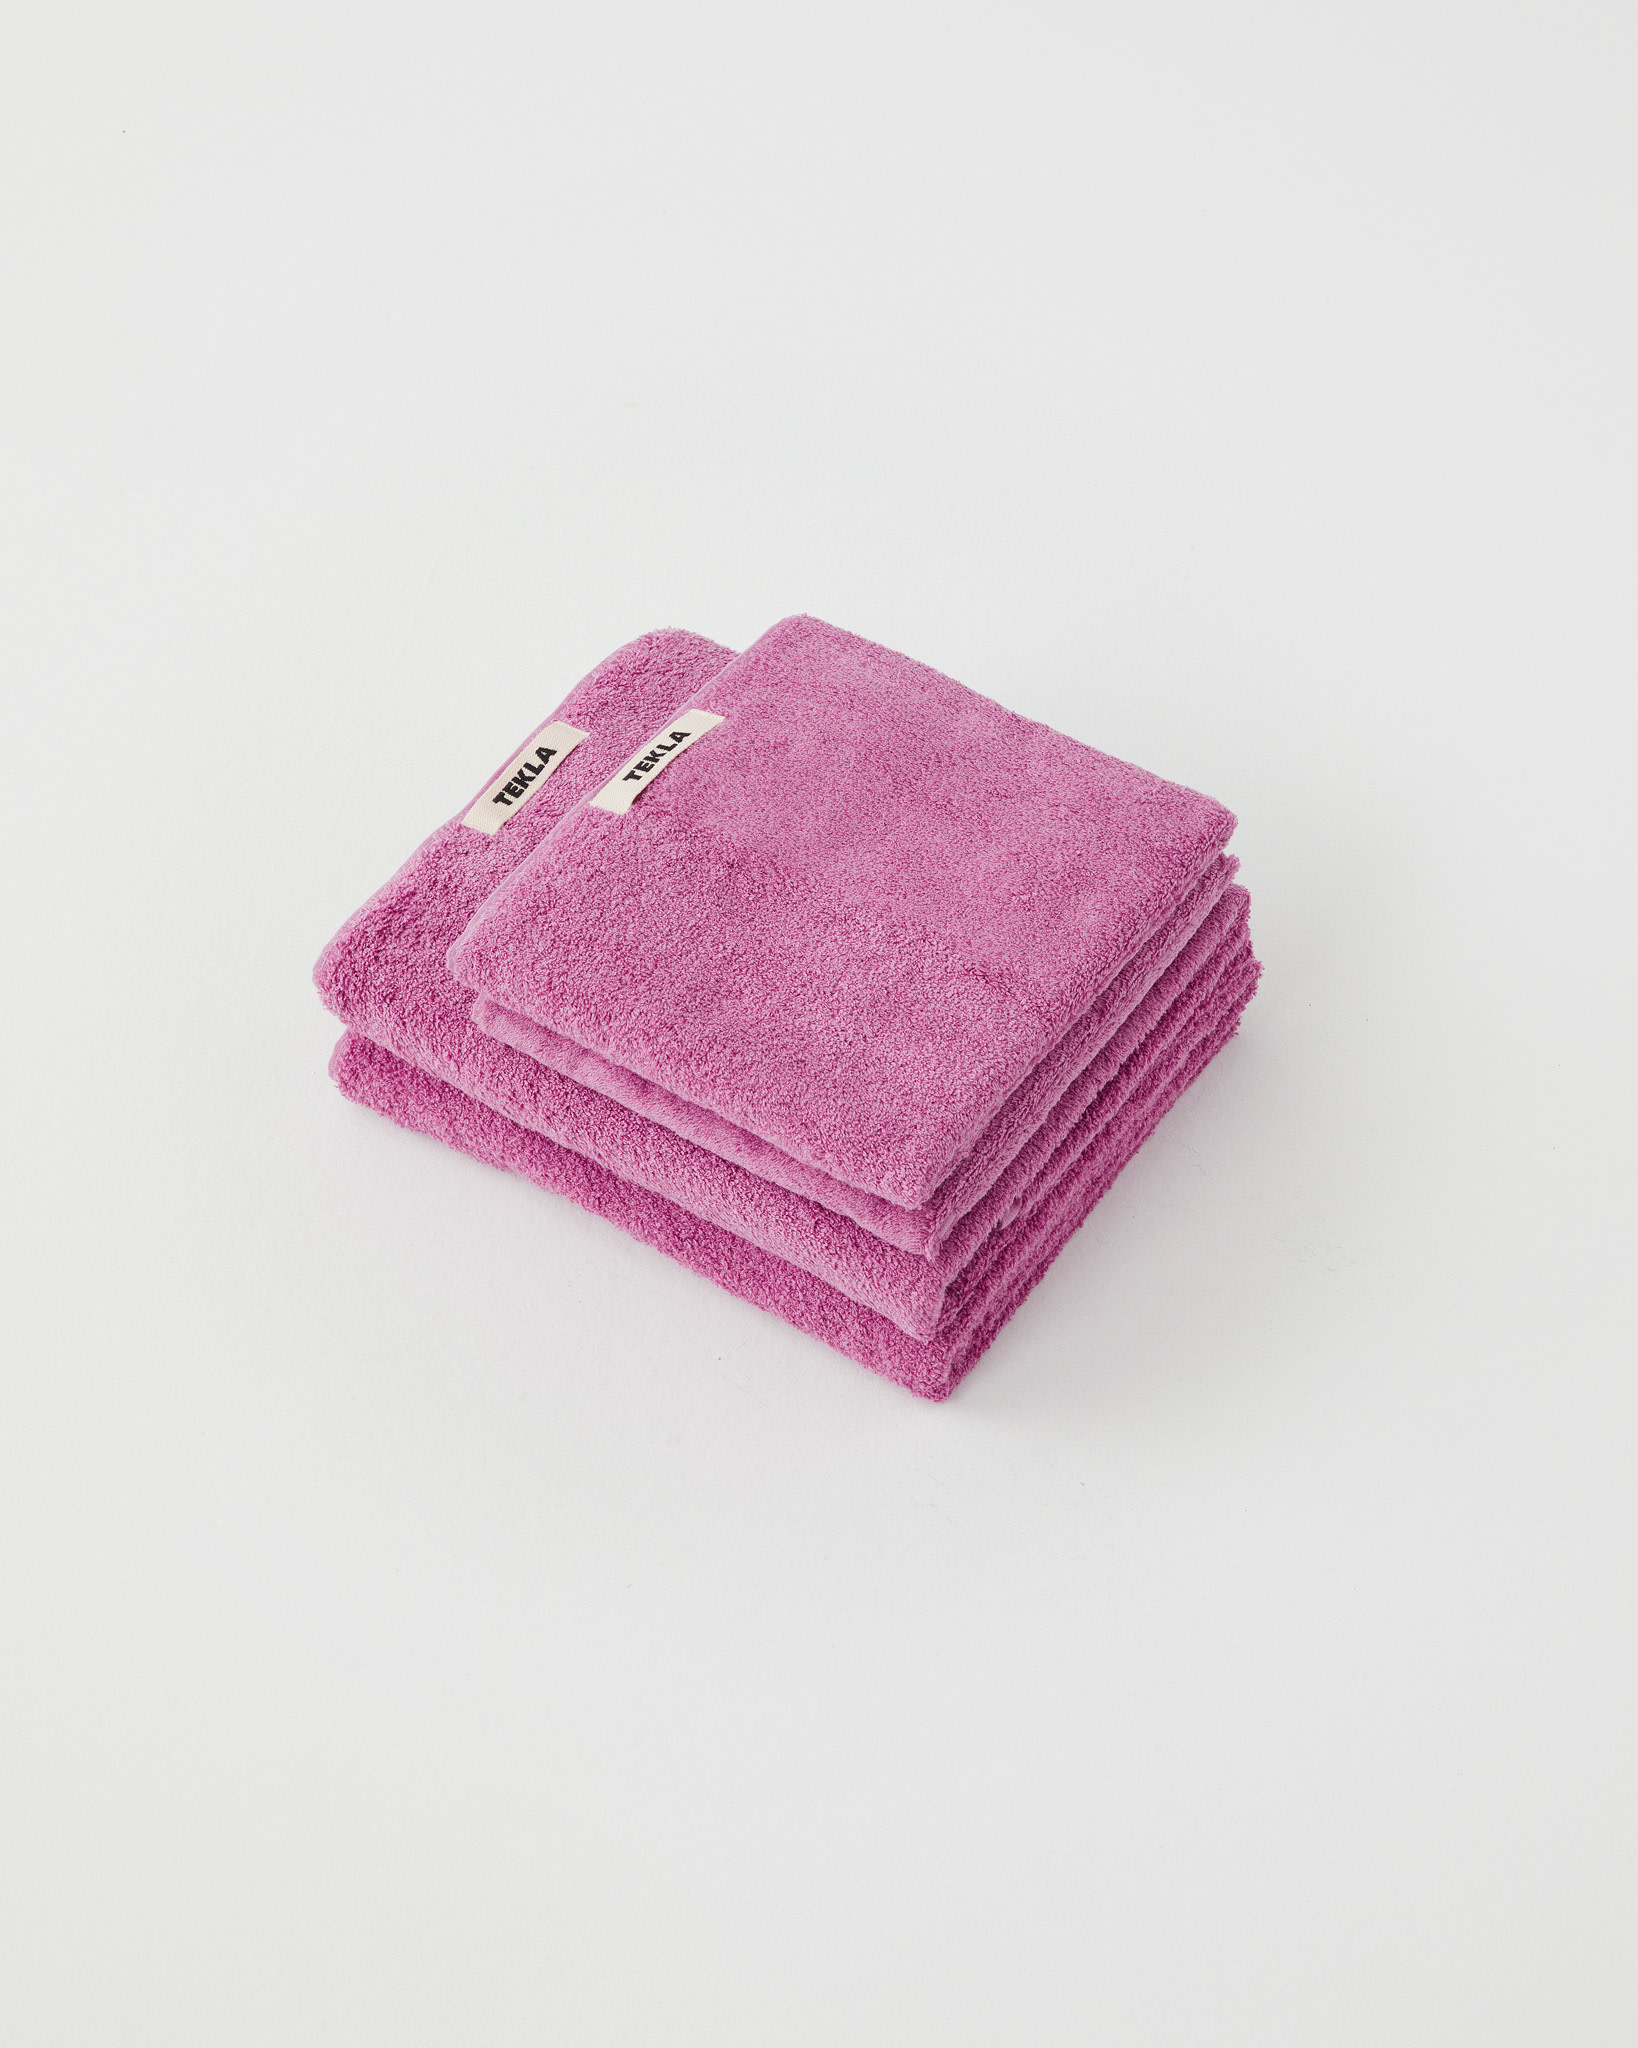 TEKLA Organic Bath Towel in Magenta